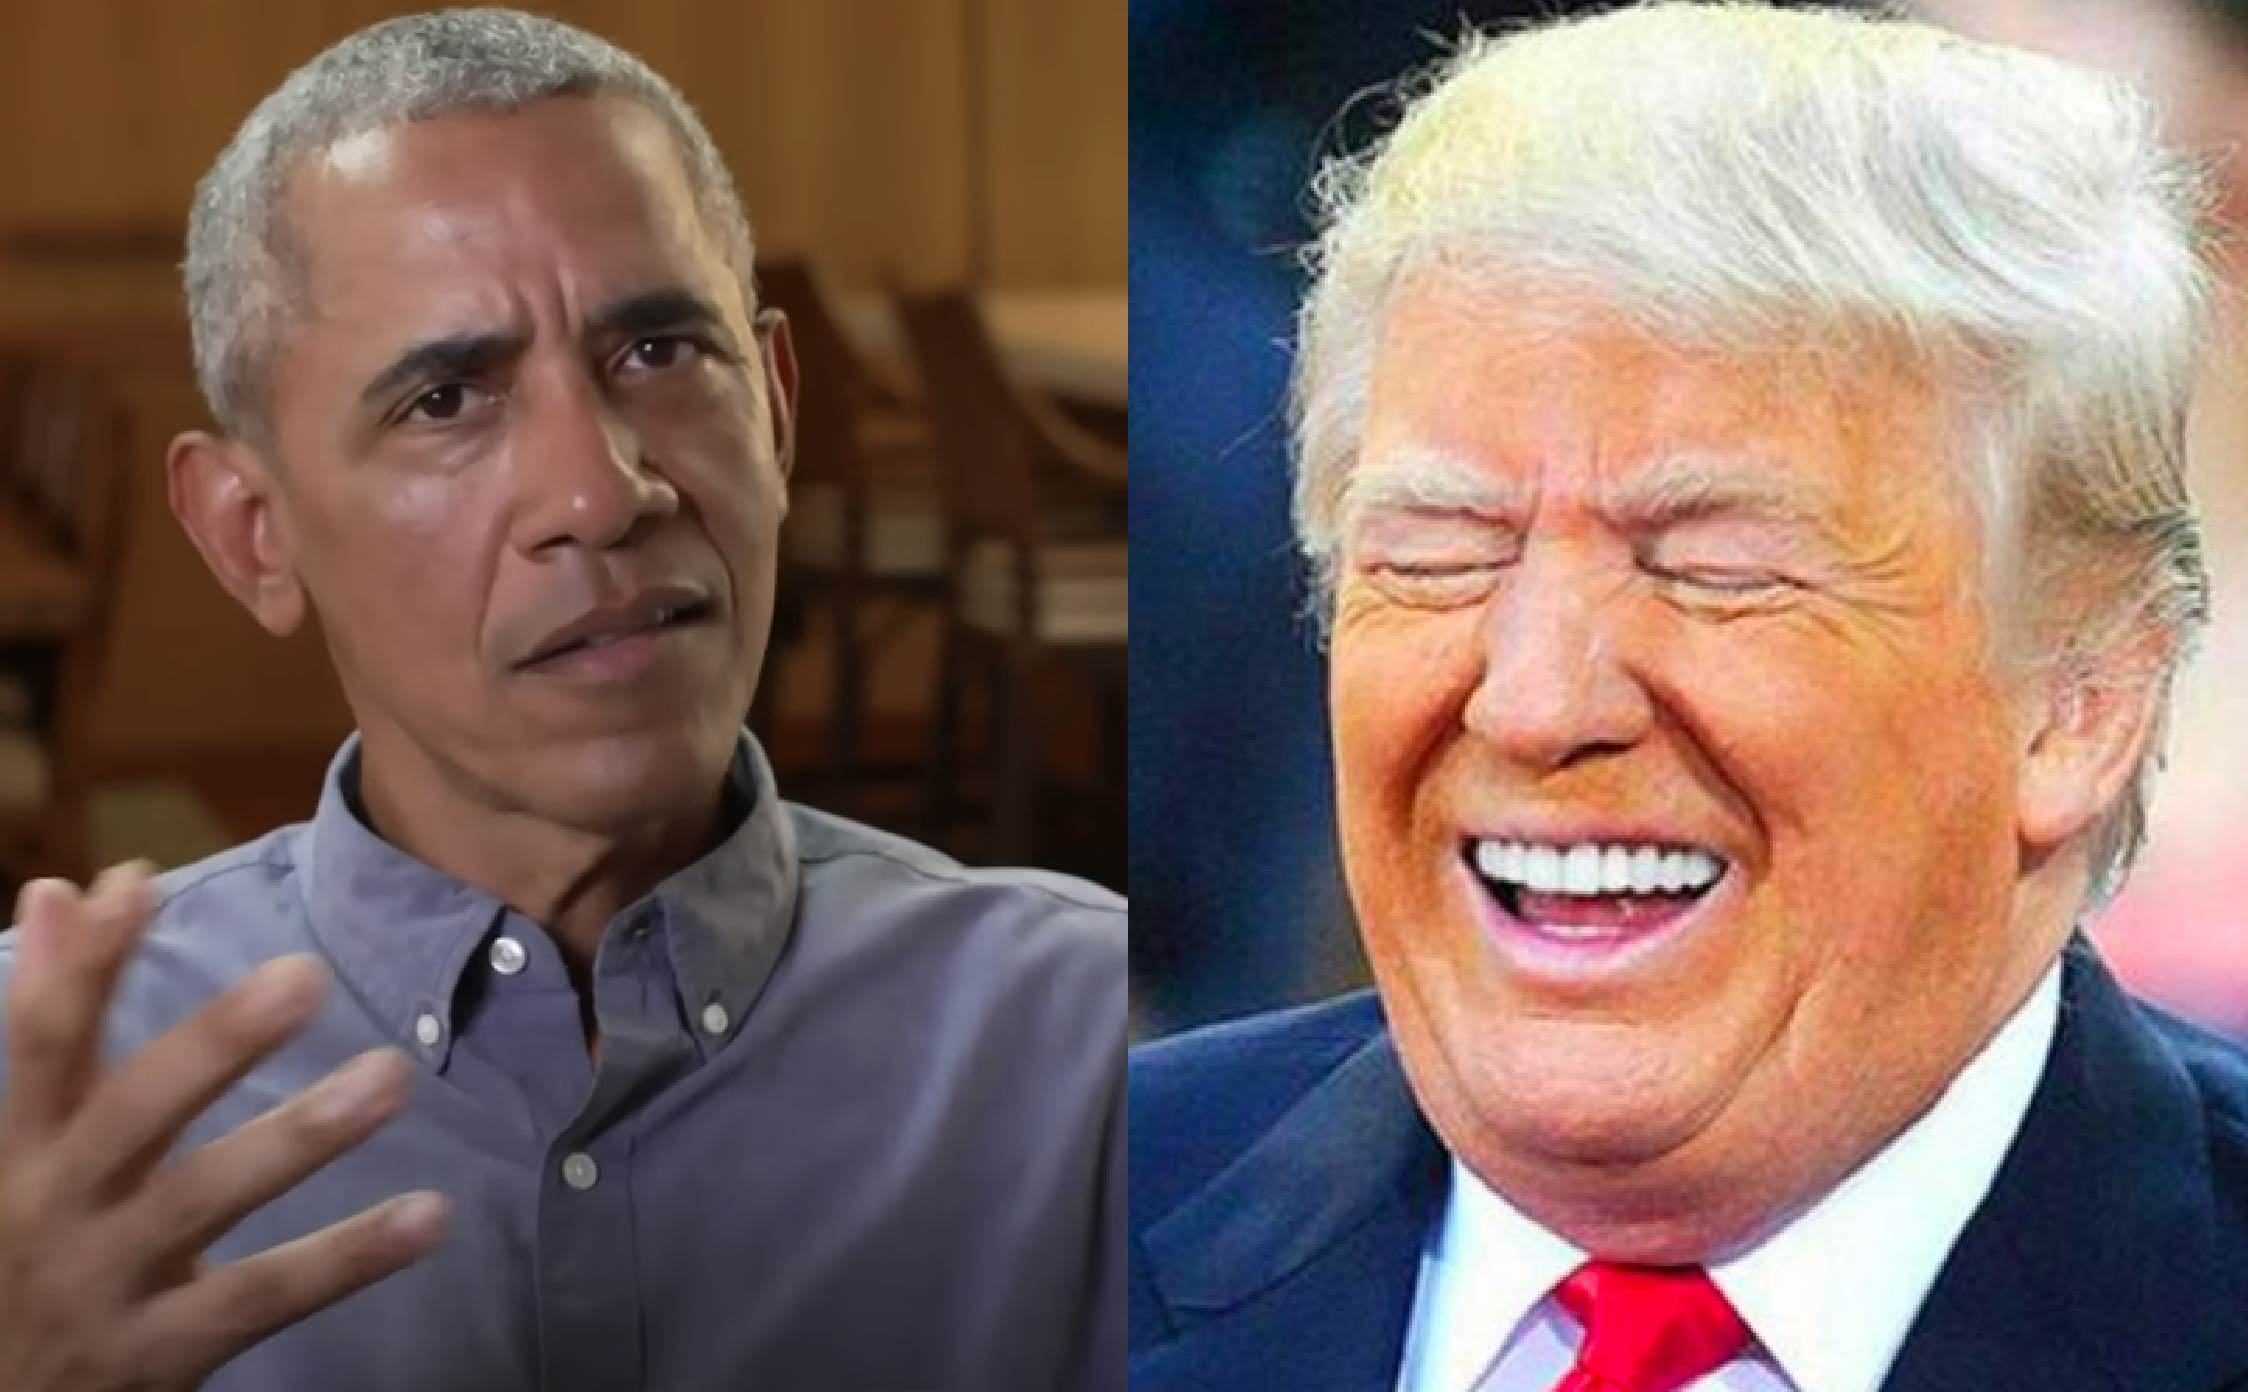 [VIDEO] Obama Tried Slamming Trump With Latest Dig on GOP, But Once Again, It Totally Backfired